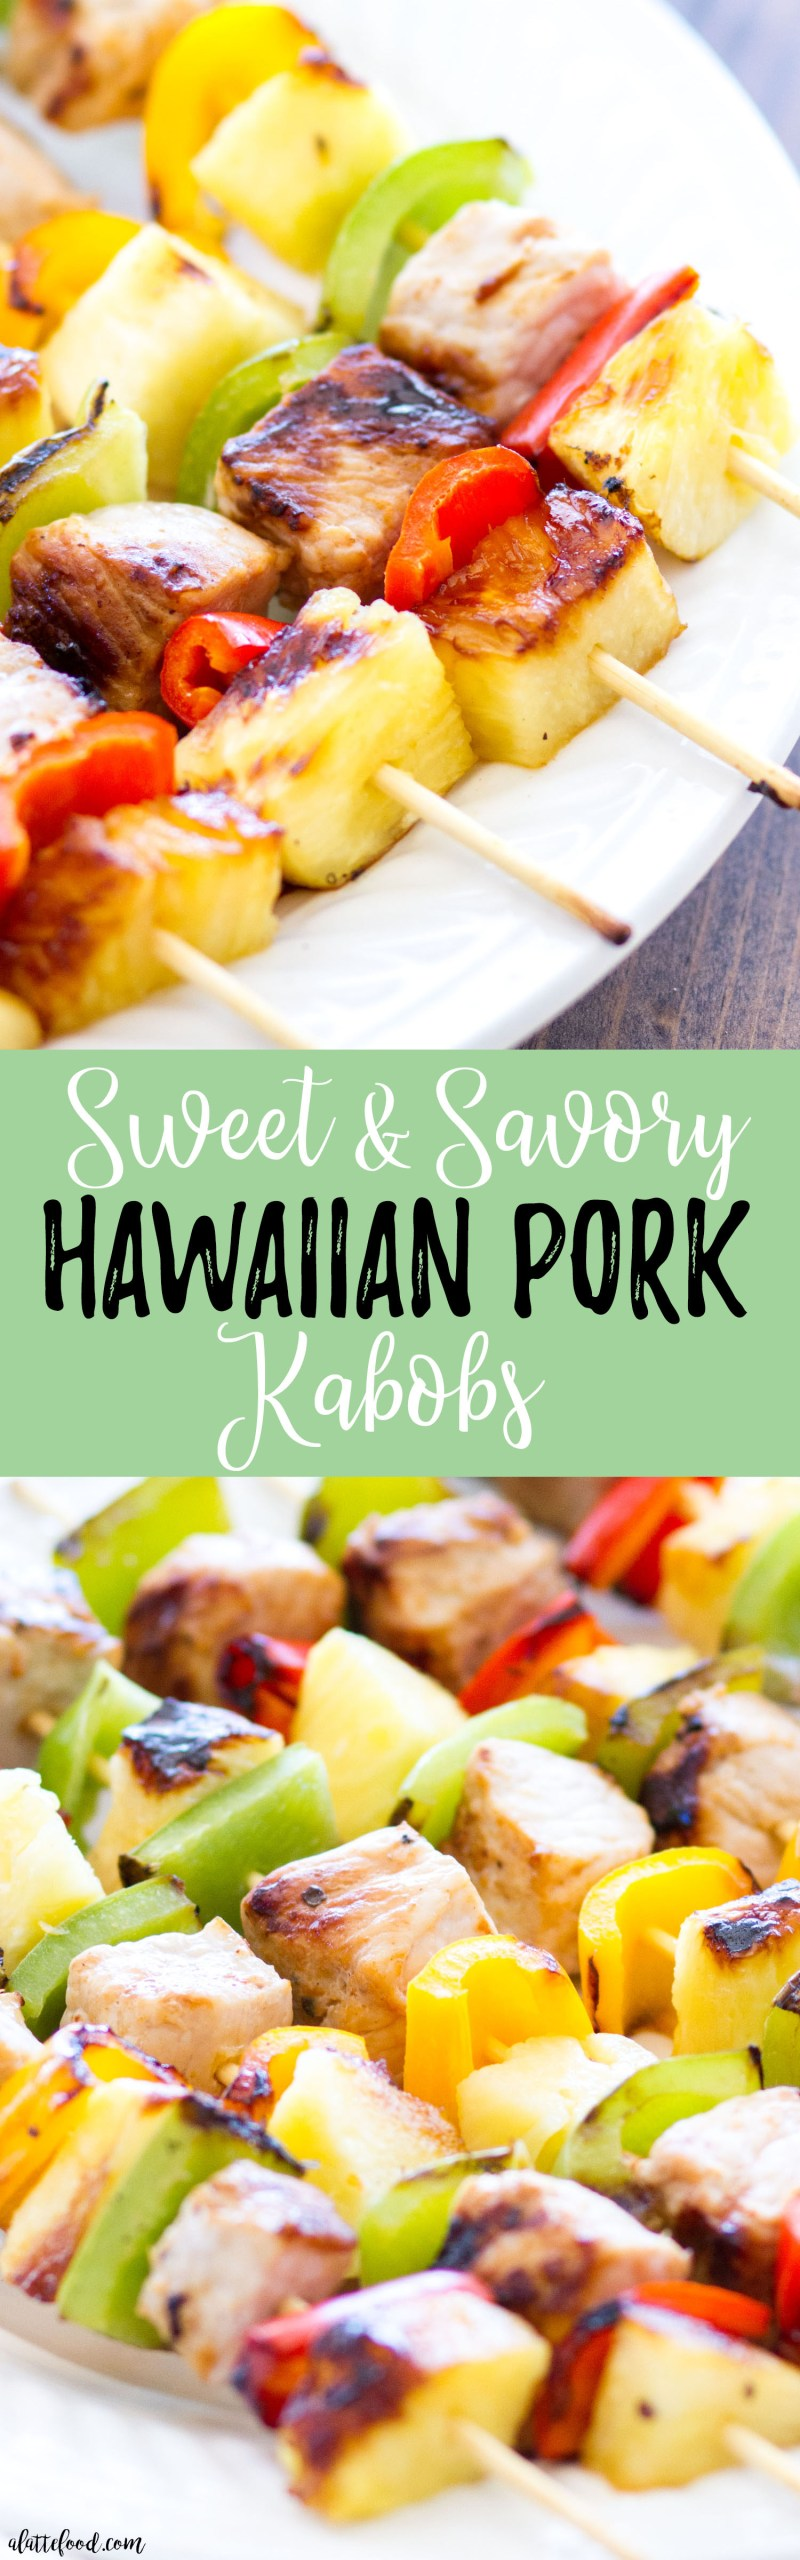 These quick and easy Hawaiian Pork Kabobs are full of bold flavors, and come together in under 30 minutes! The perfect back-to-school meal for busy families!